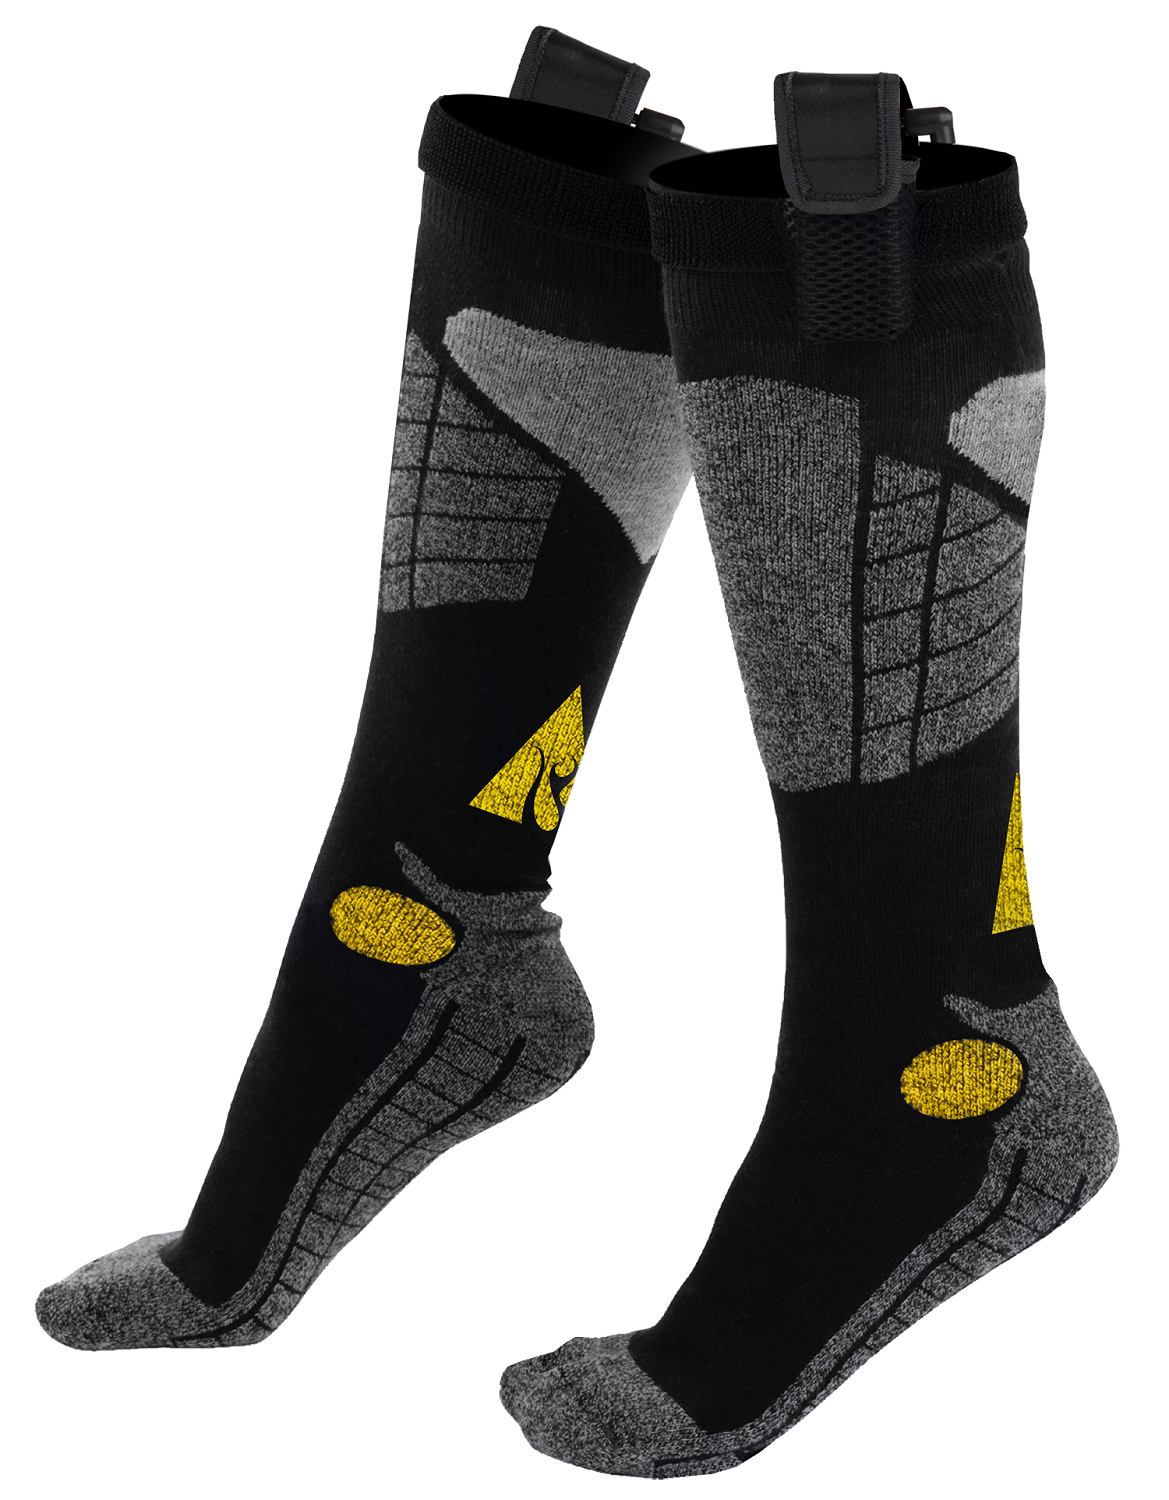 Actionheat 3 7v Rechargeable Battery Heated Socks Cotton Heated Socks Heated Clothing Socks